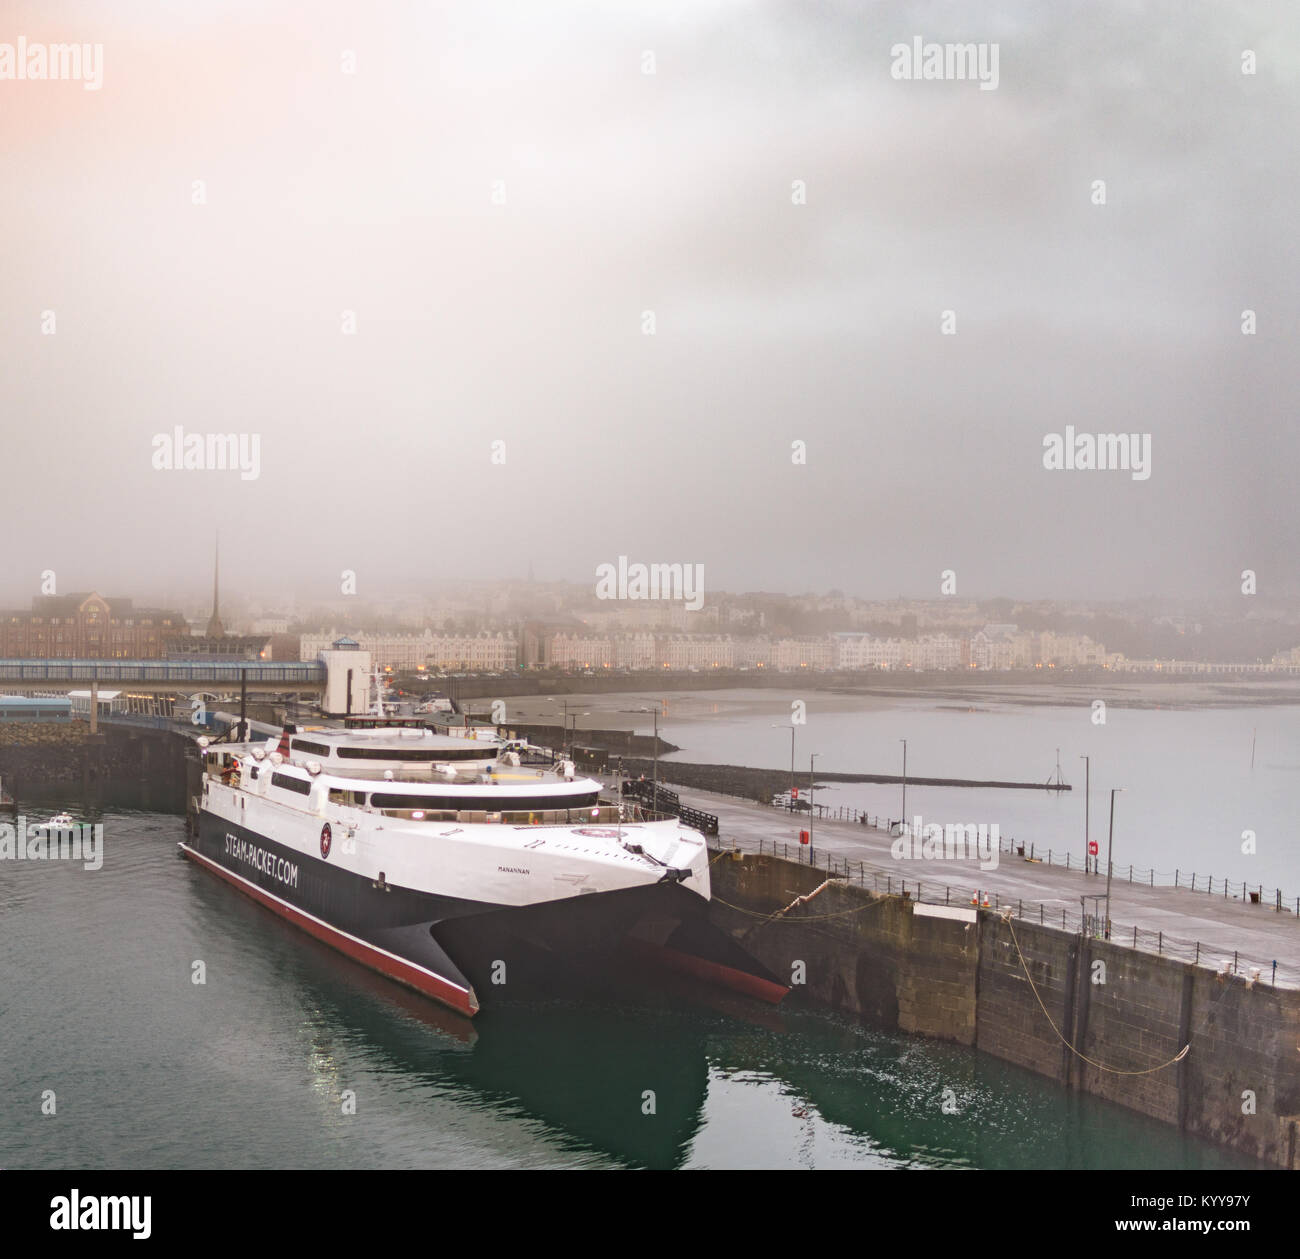 Isle Of Man Steam-Packet ferry vessel docked in Douglasmorning - Stock Image